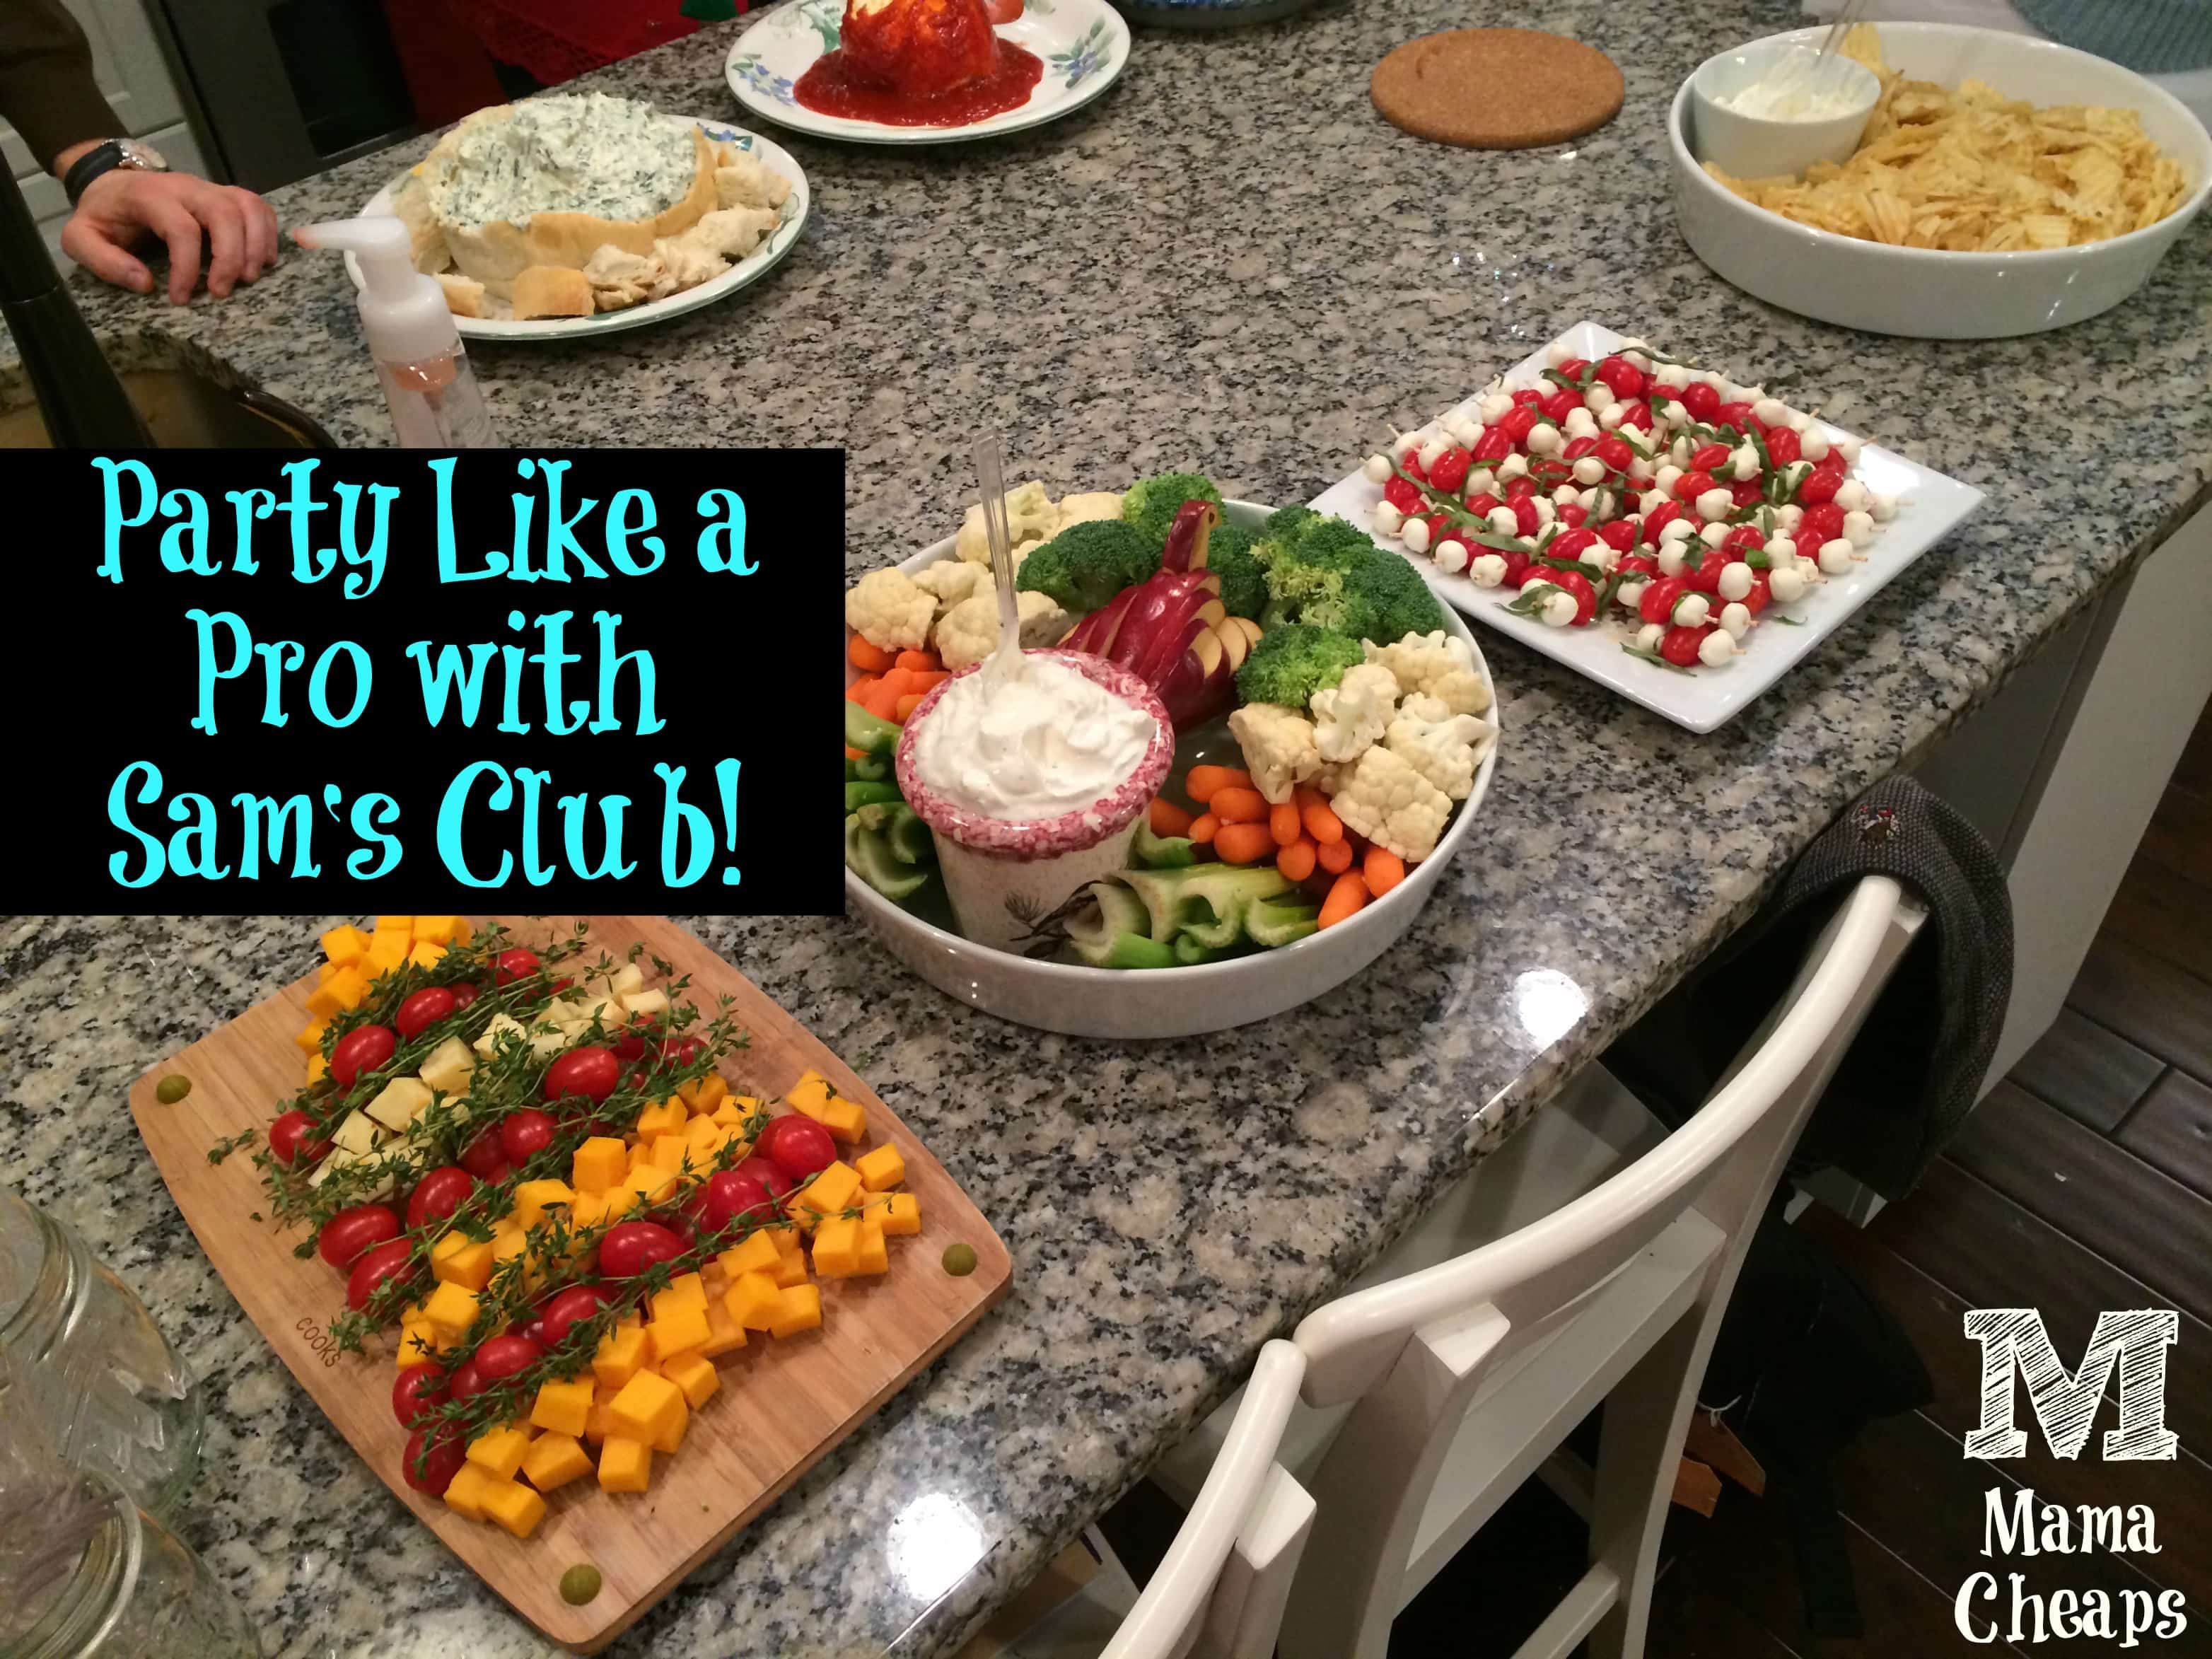 Party Like a Pro with Sam's Club